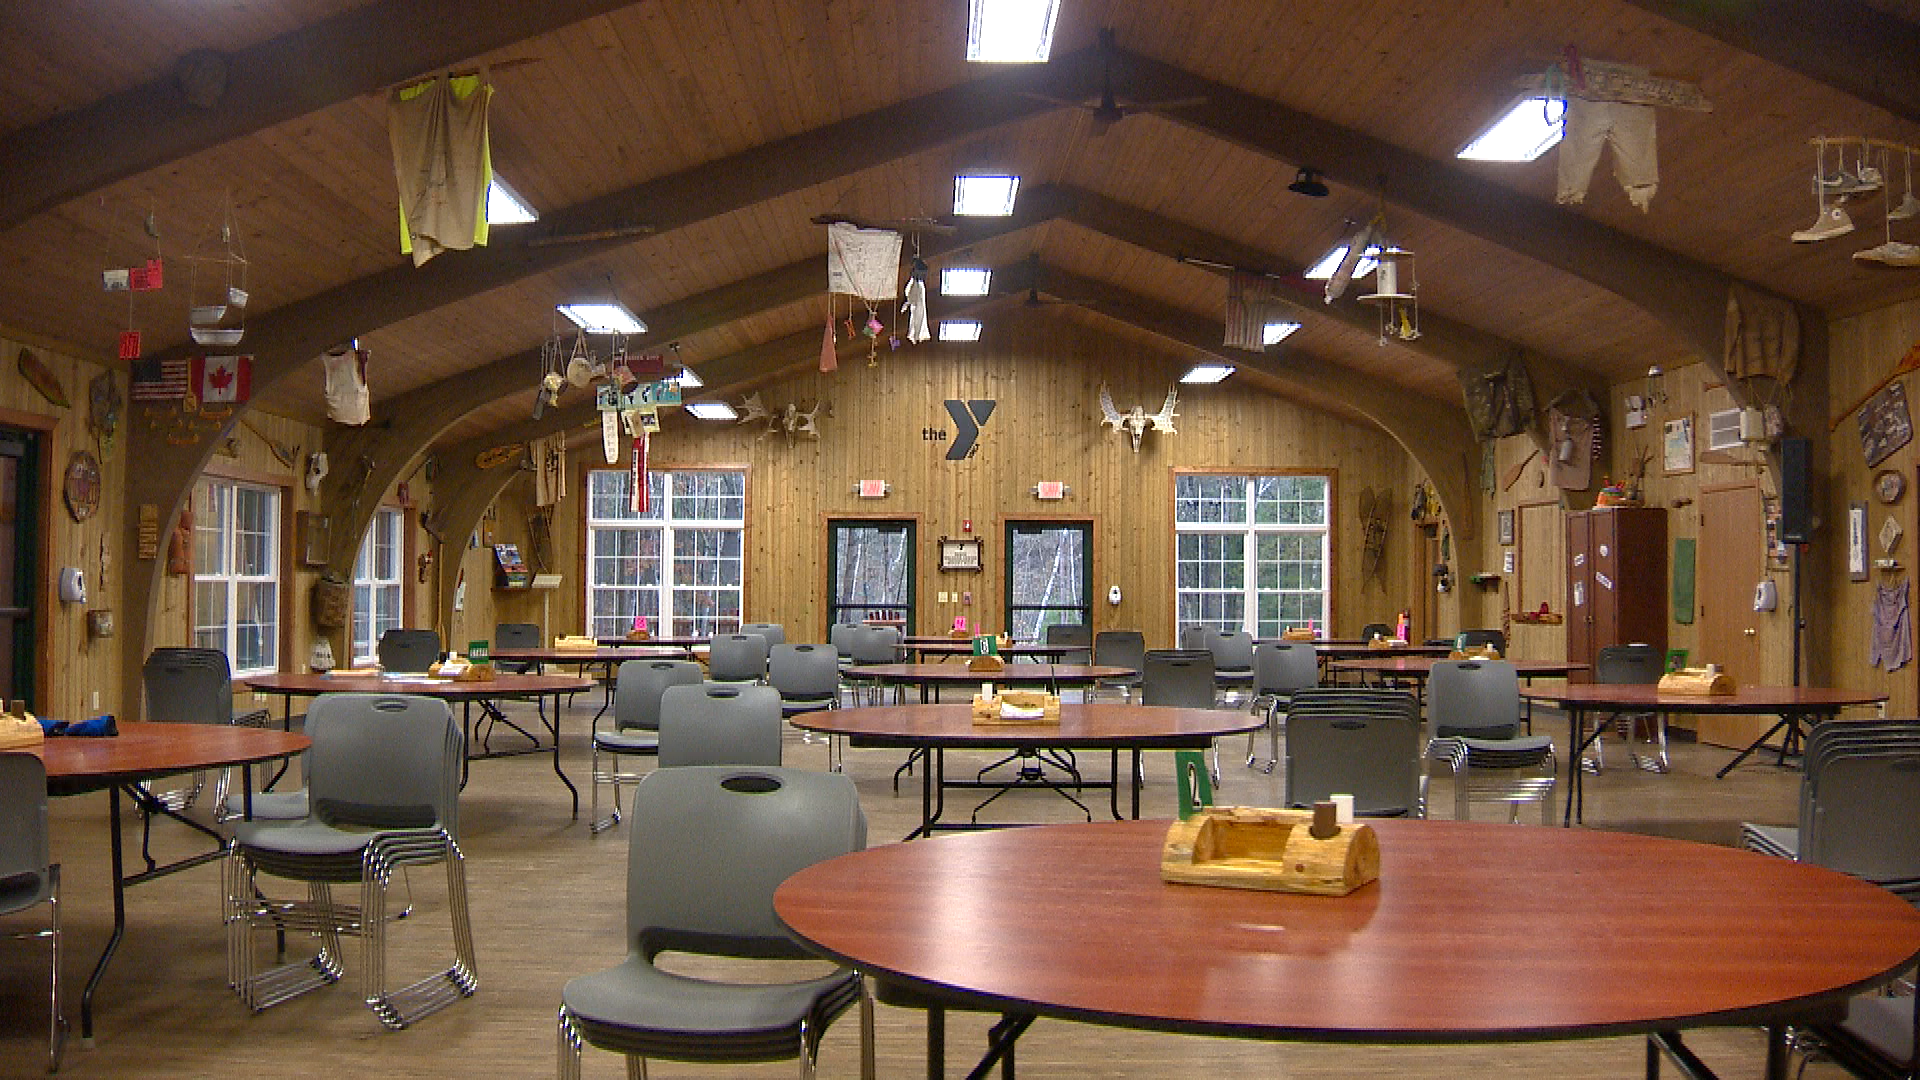 Camp cafeteria has round tables to promote more interaction among campers (WLUK)<p></p>